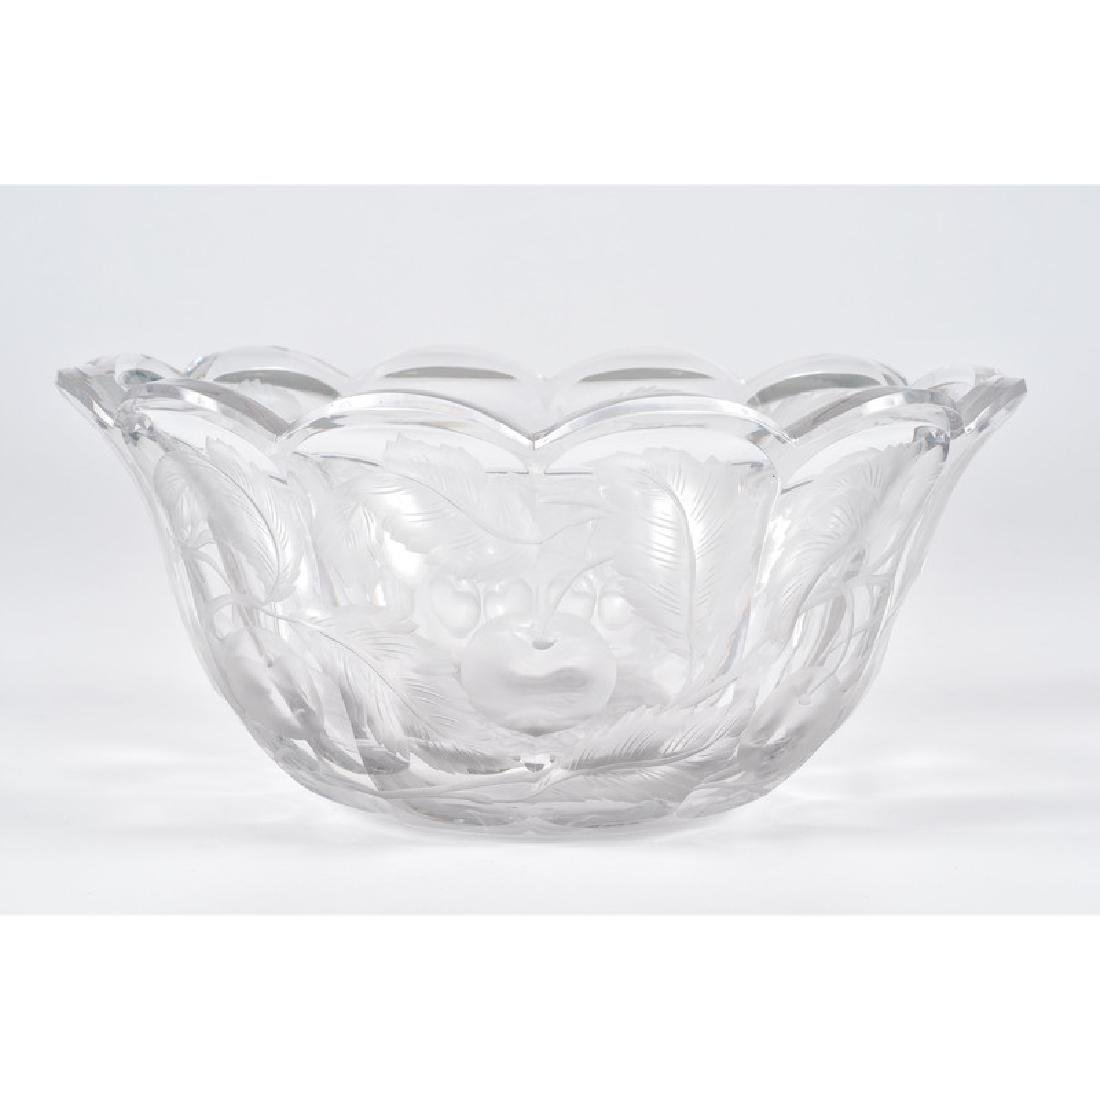 Libbey Glass Bowl with Cherry Pattern